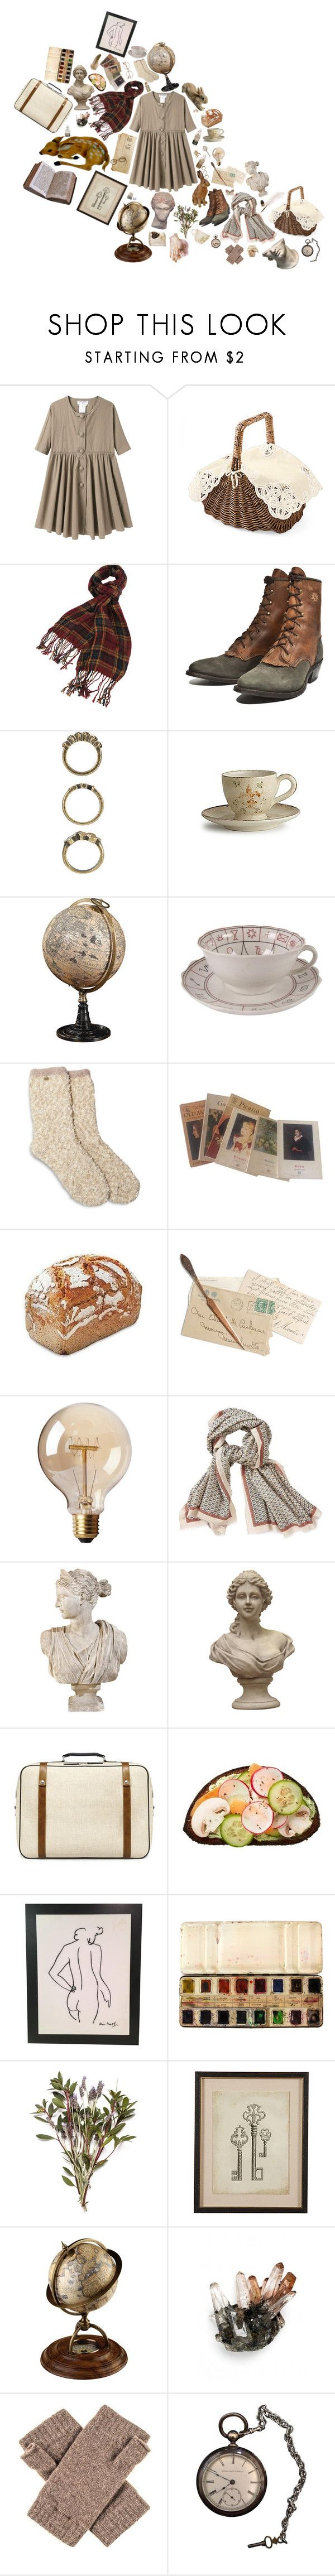 """""""inanity"""" by flyingmonkeys1995 ❤ liked on Polyvore featuring Charles Anastase, Forever 21, Arte Italica, Monet, Hobbs, Aigle, Zara, Ethan Allen and Authentic Models"""